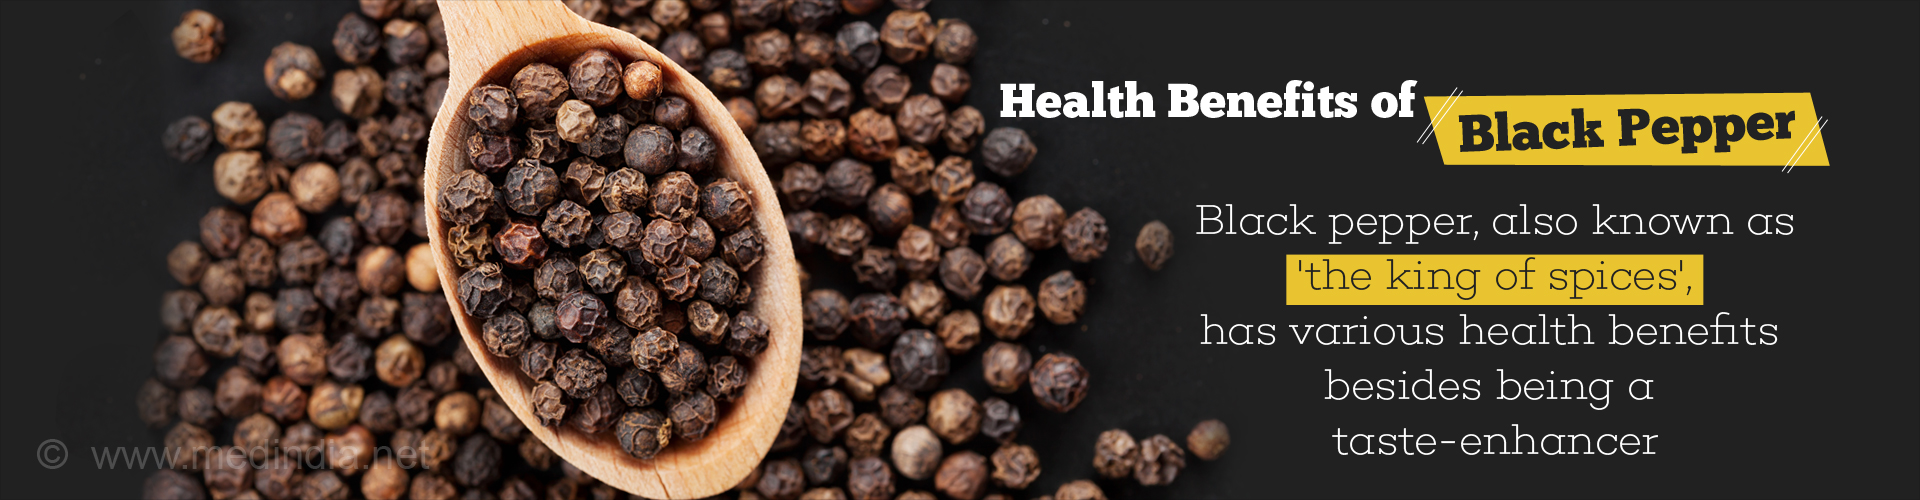 Health benefits of black pepper - Black pepper, also known as 'the king of spices' has various health benefits besides being a taste-enhancer